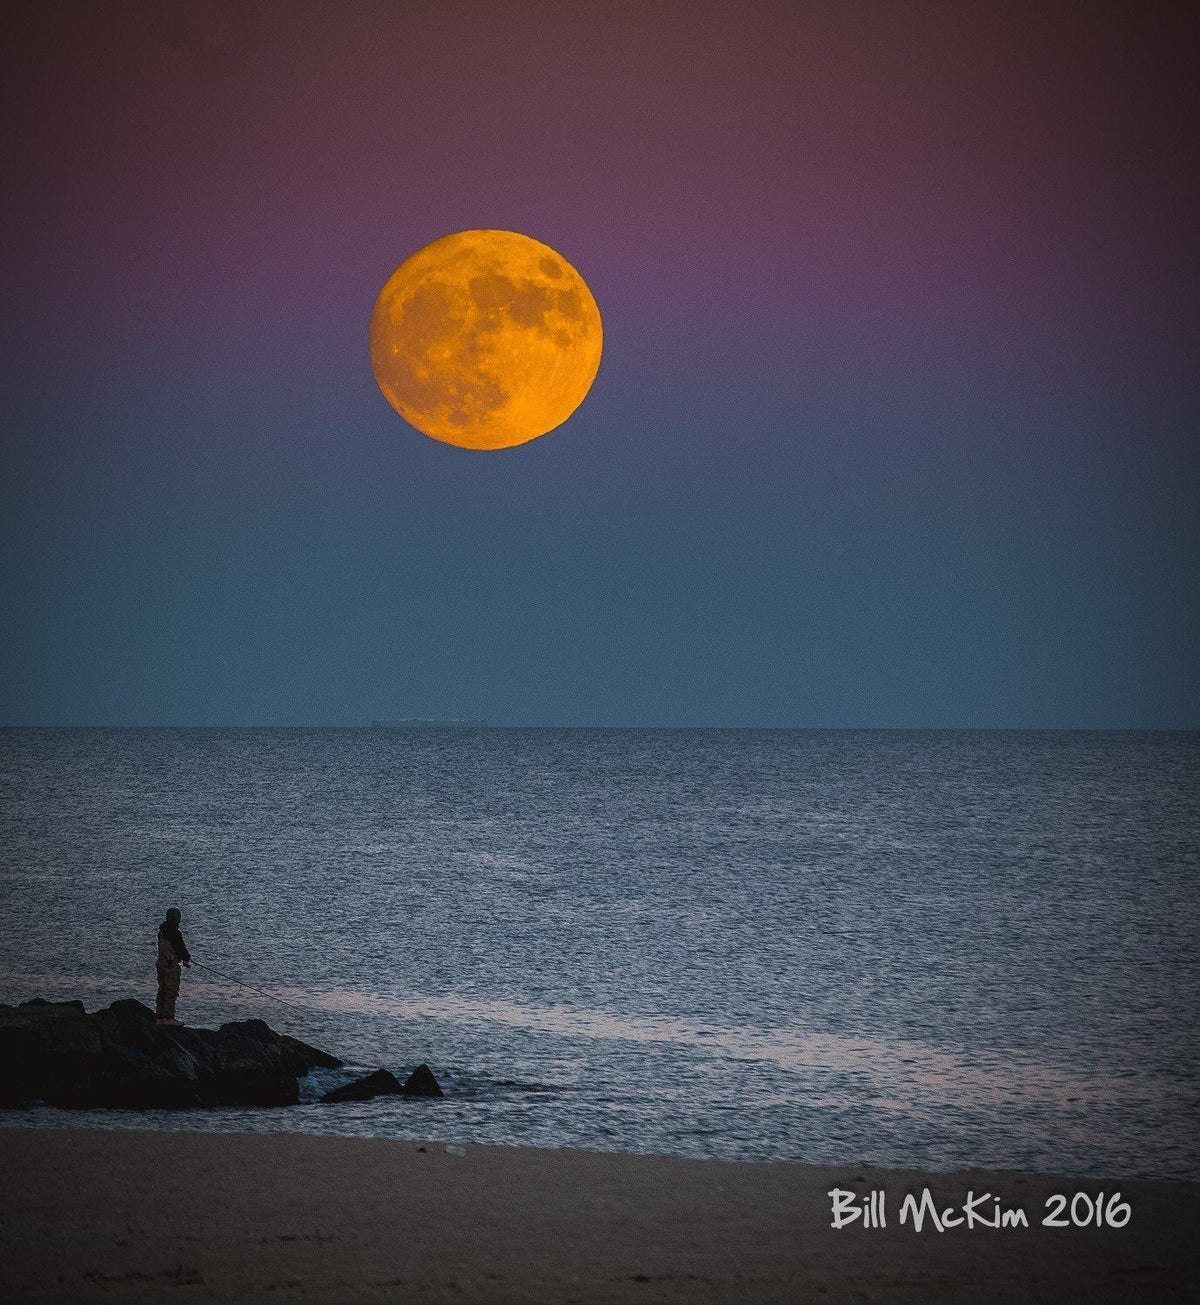 Super Moon 2016 - Bill McKim Photography -Jersey Shore whale watch tours